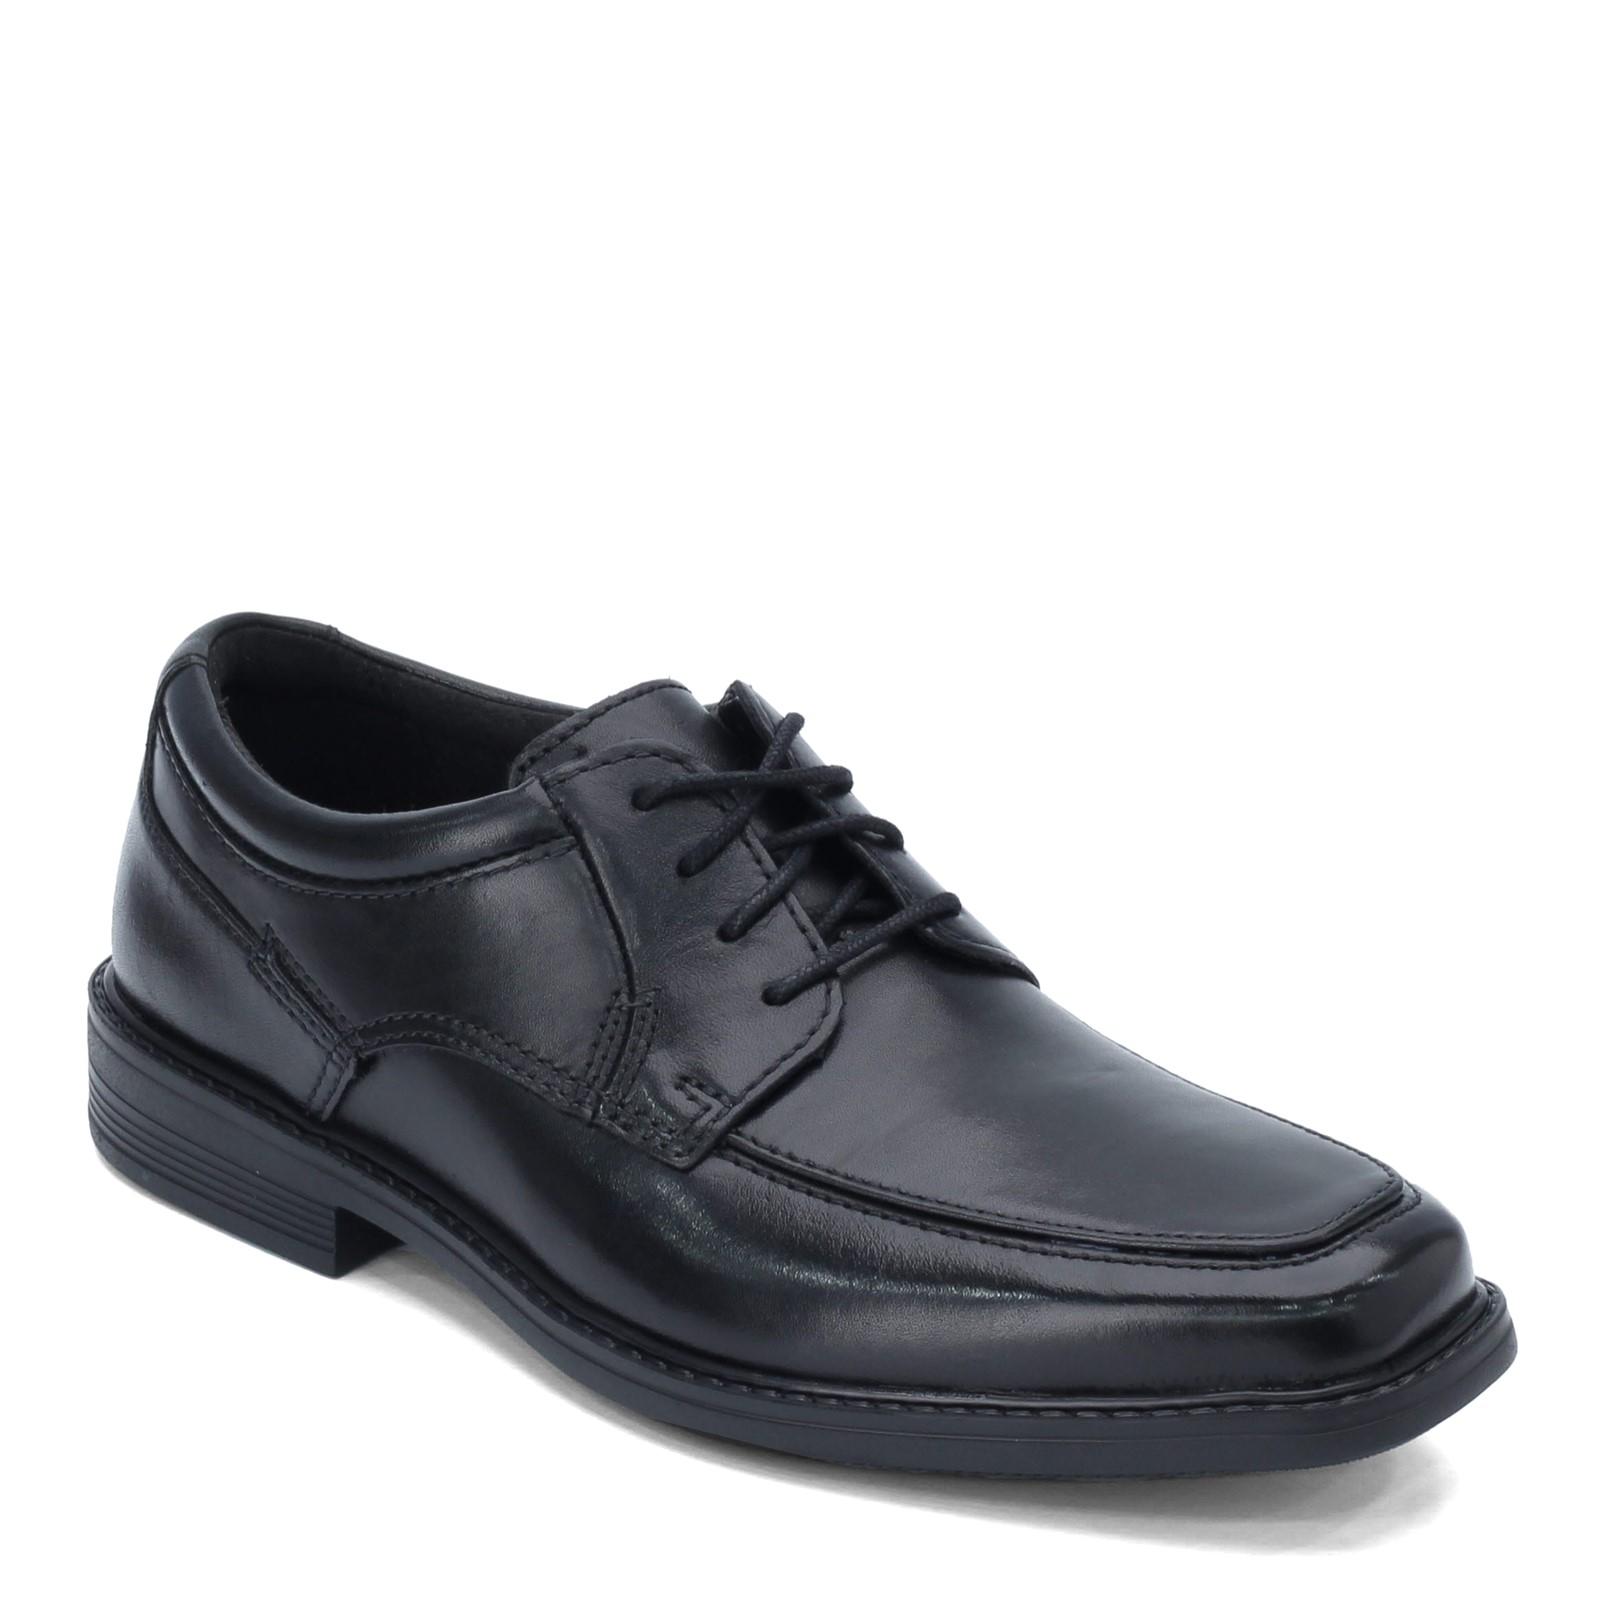 Men's Bostonian, Ipswich Apron Oxford